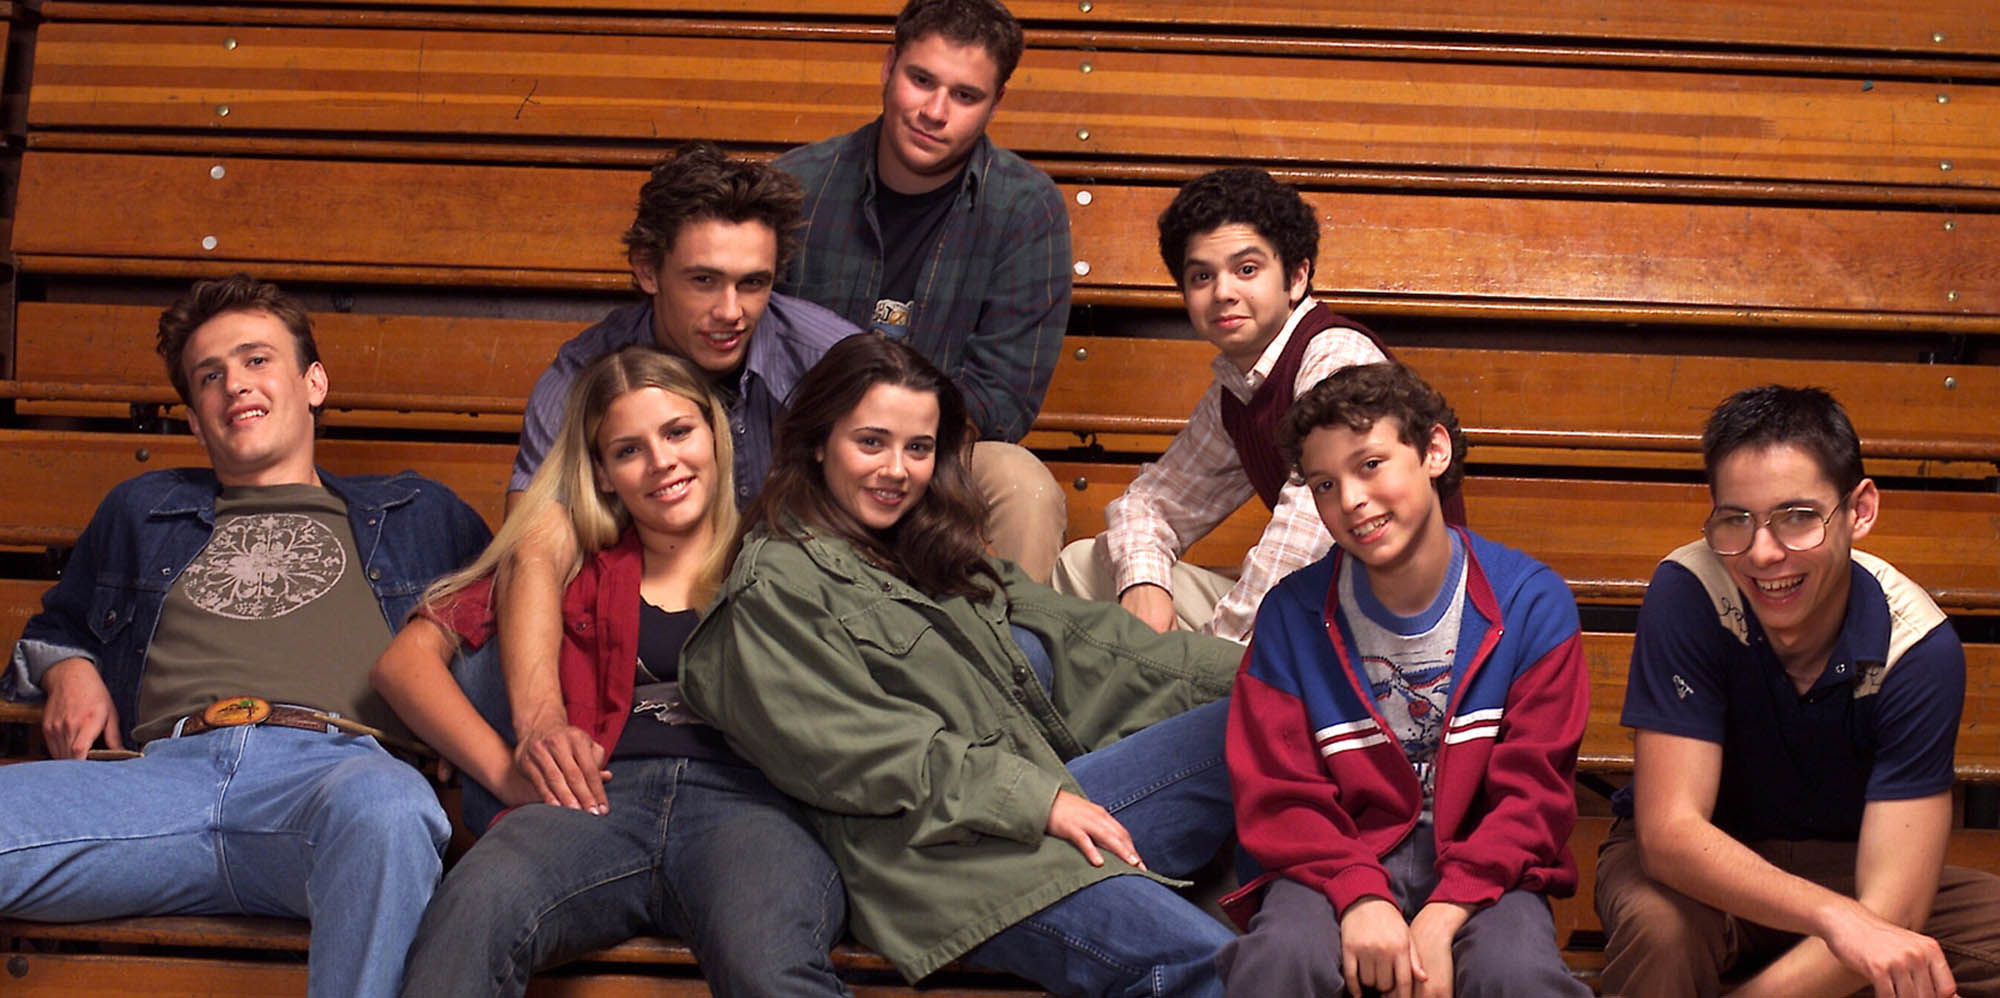 Teenage romance TV shows that made our hearts skip a beat - Film Daily